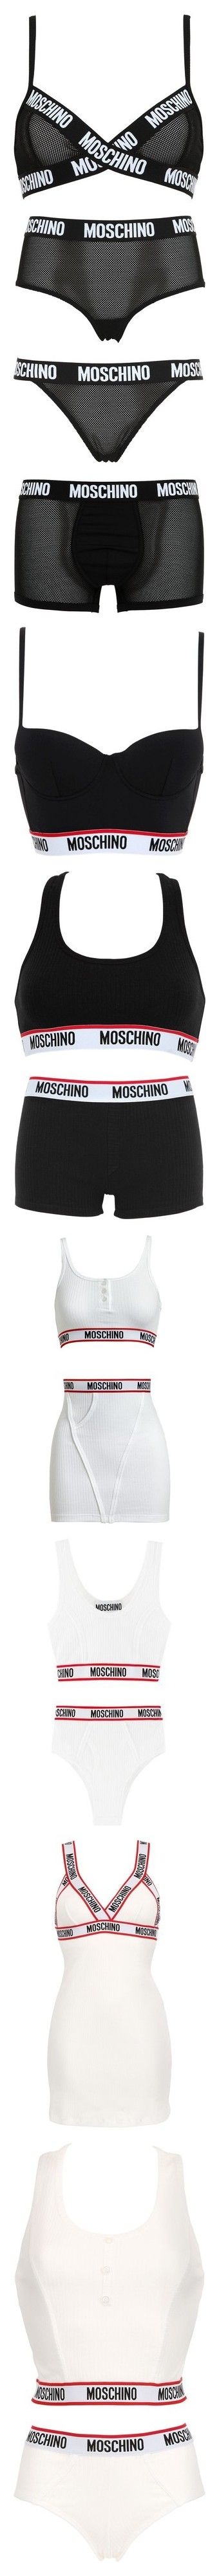 """Moschino Matches"" by nataliemcmahan ❤ liked on Polyvore featuring intimates, bras, tops, underwear, lingerie, black, black mesh bra, mesh bra, triangle bra and black lingerie"